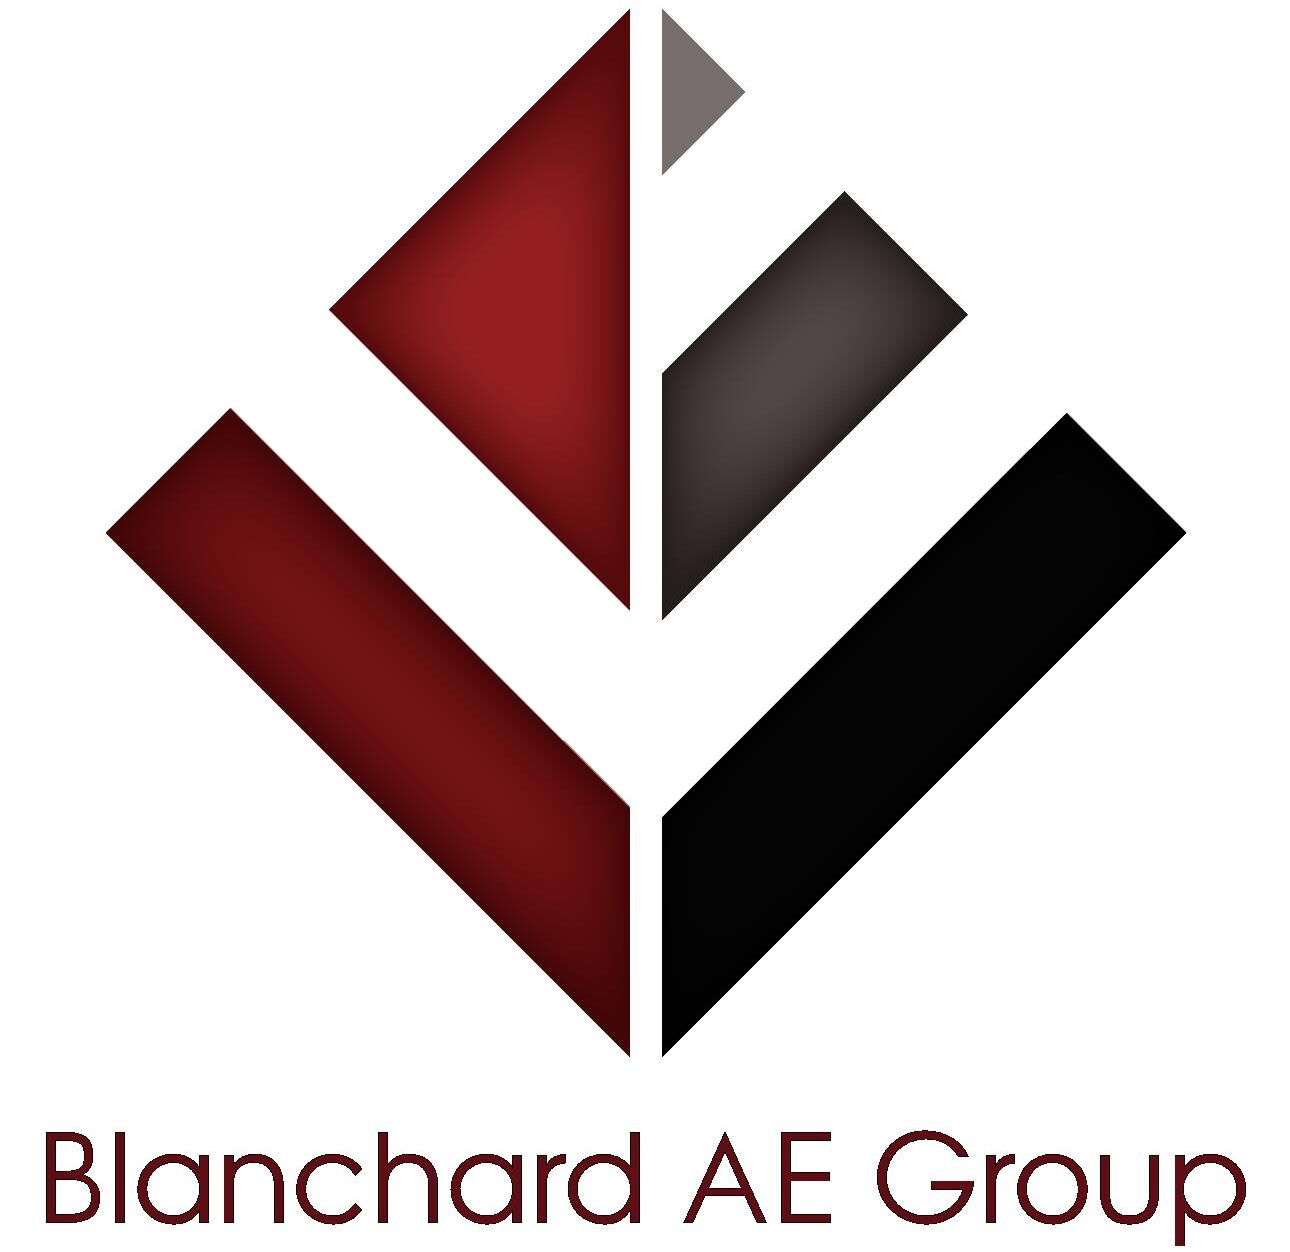 Blanchard AE Group